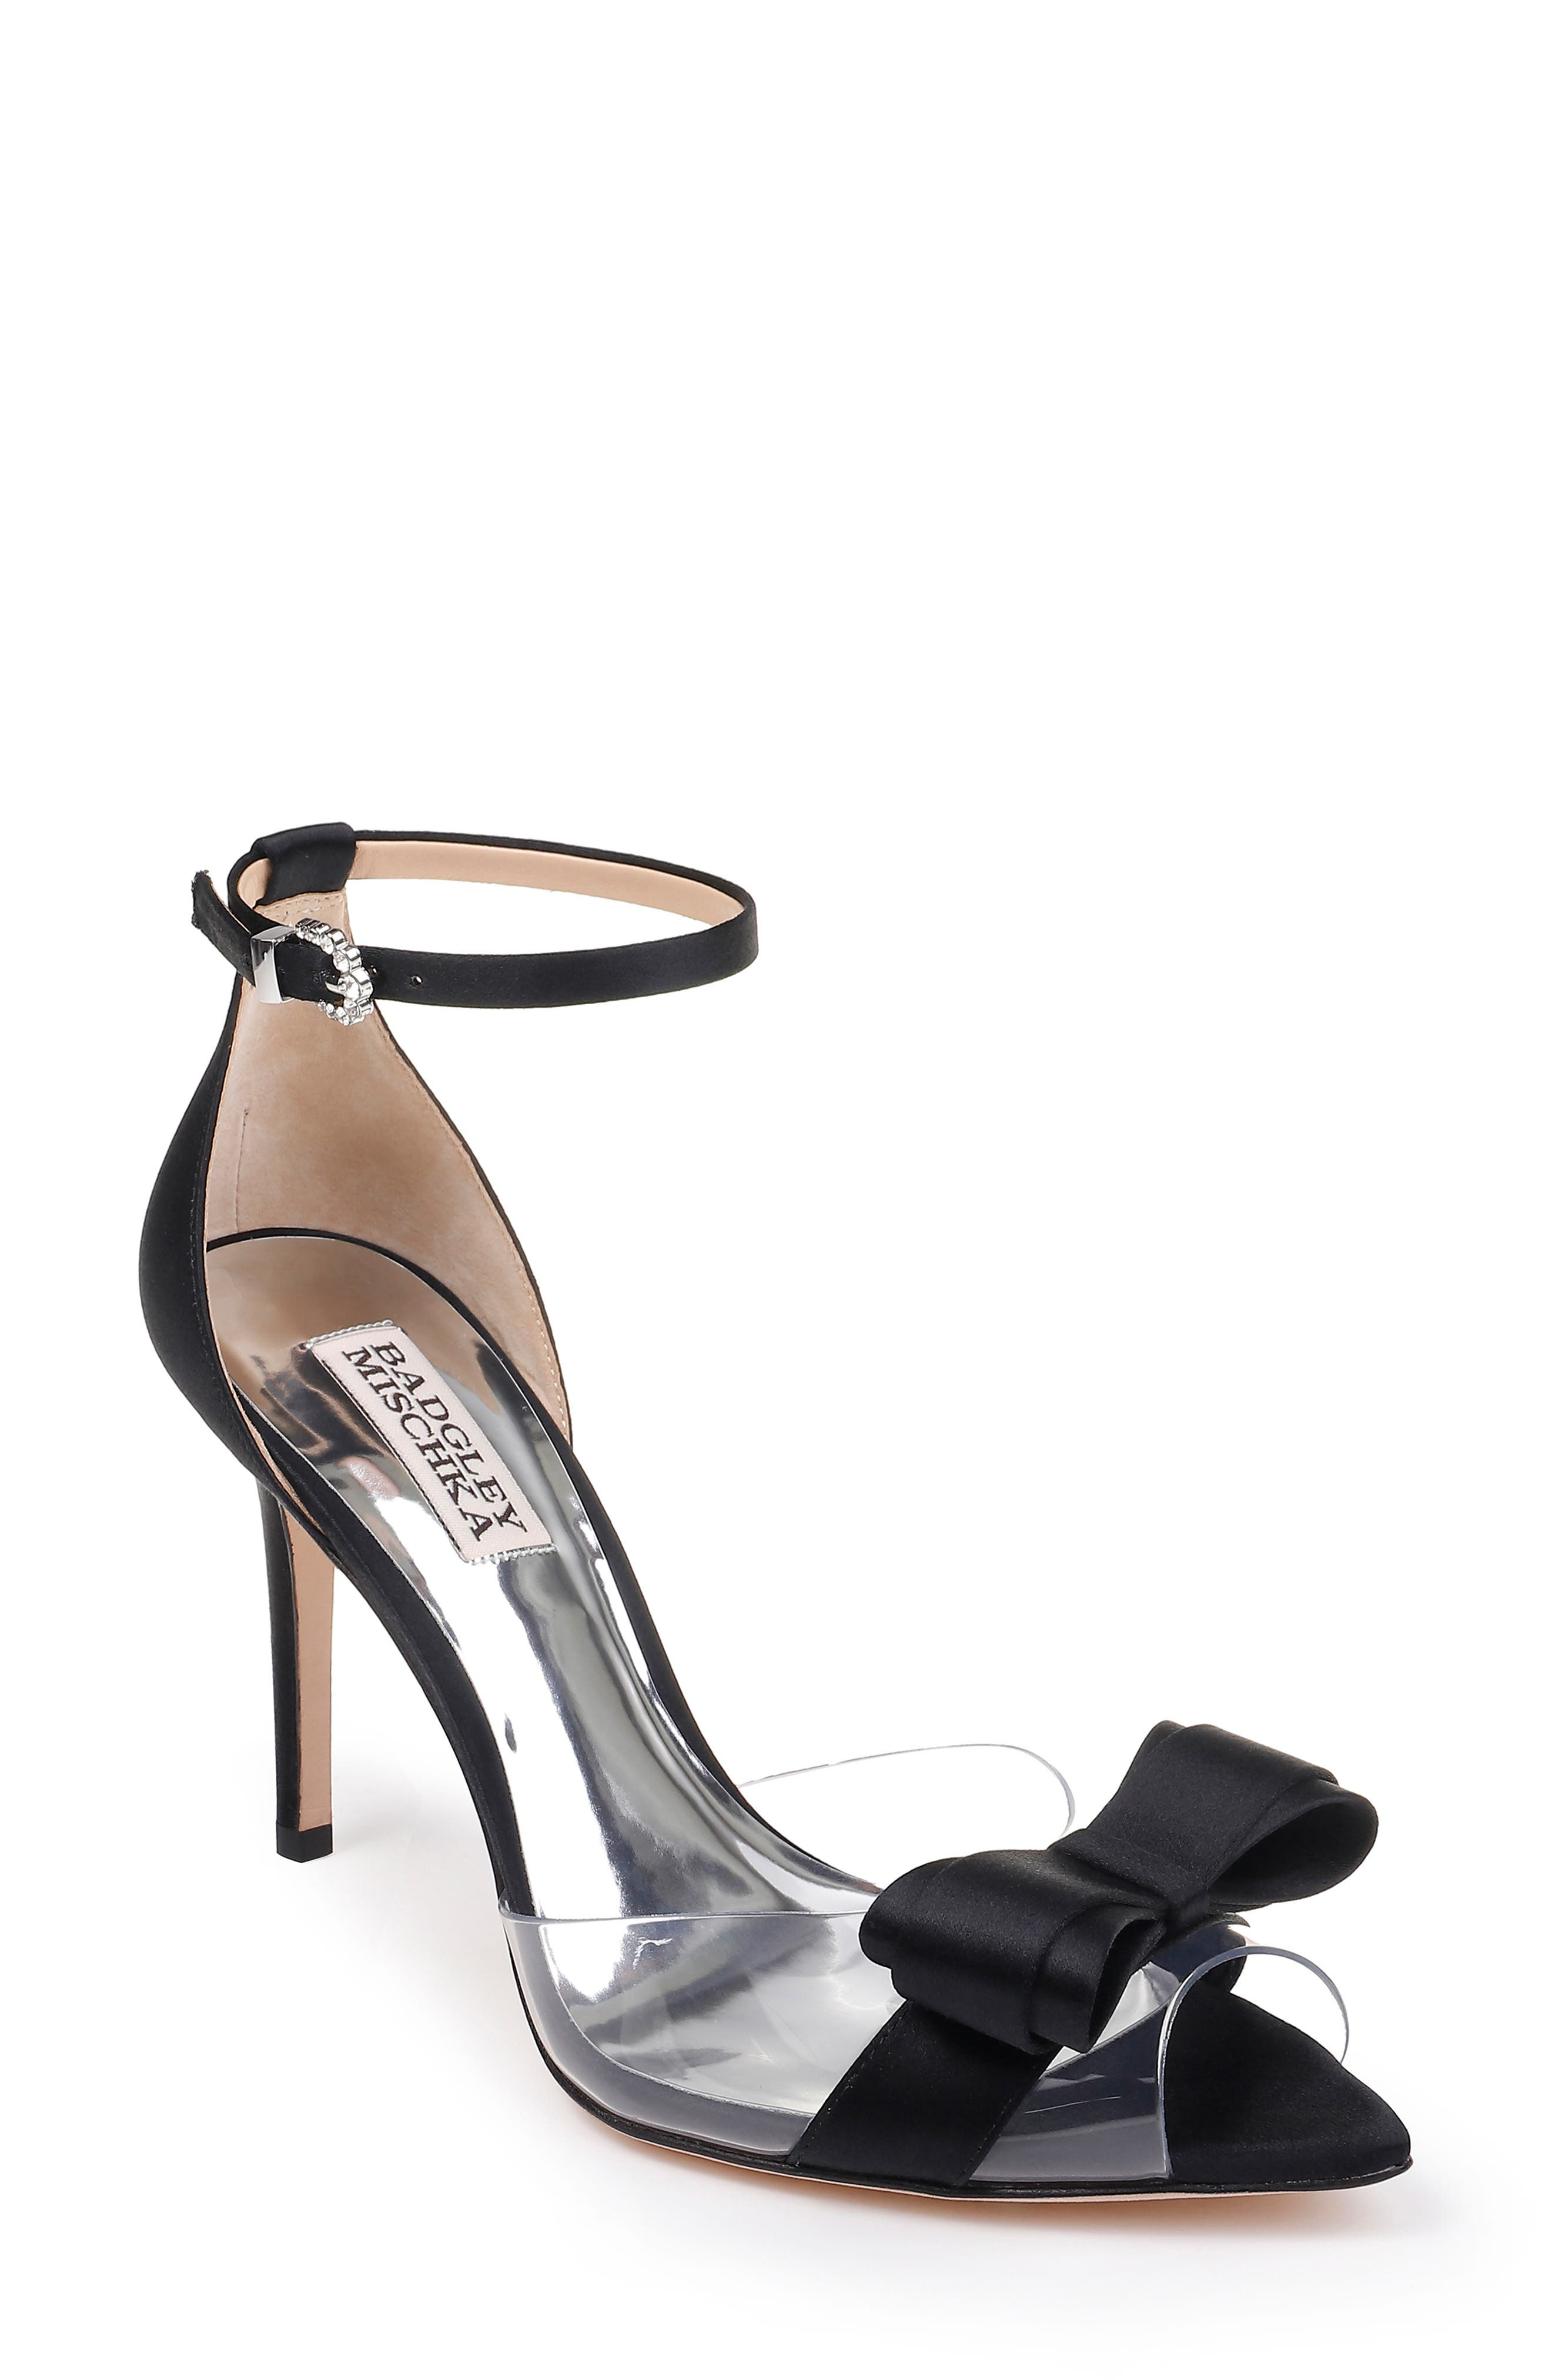 Badgley Mischka Lindsay Ankle Strap Sandal, Black